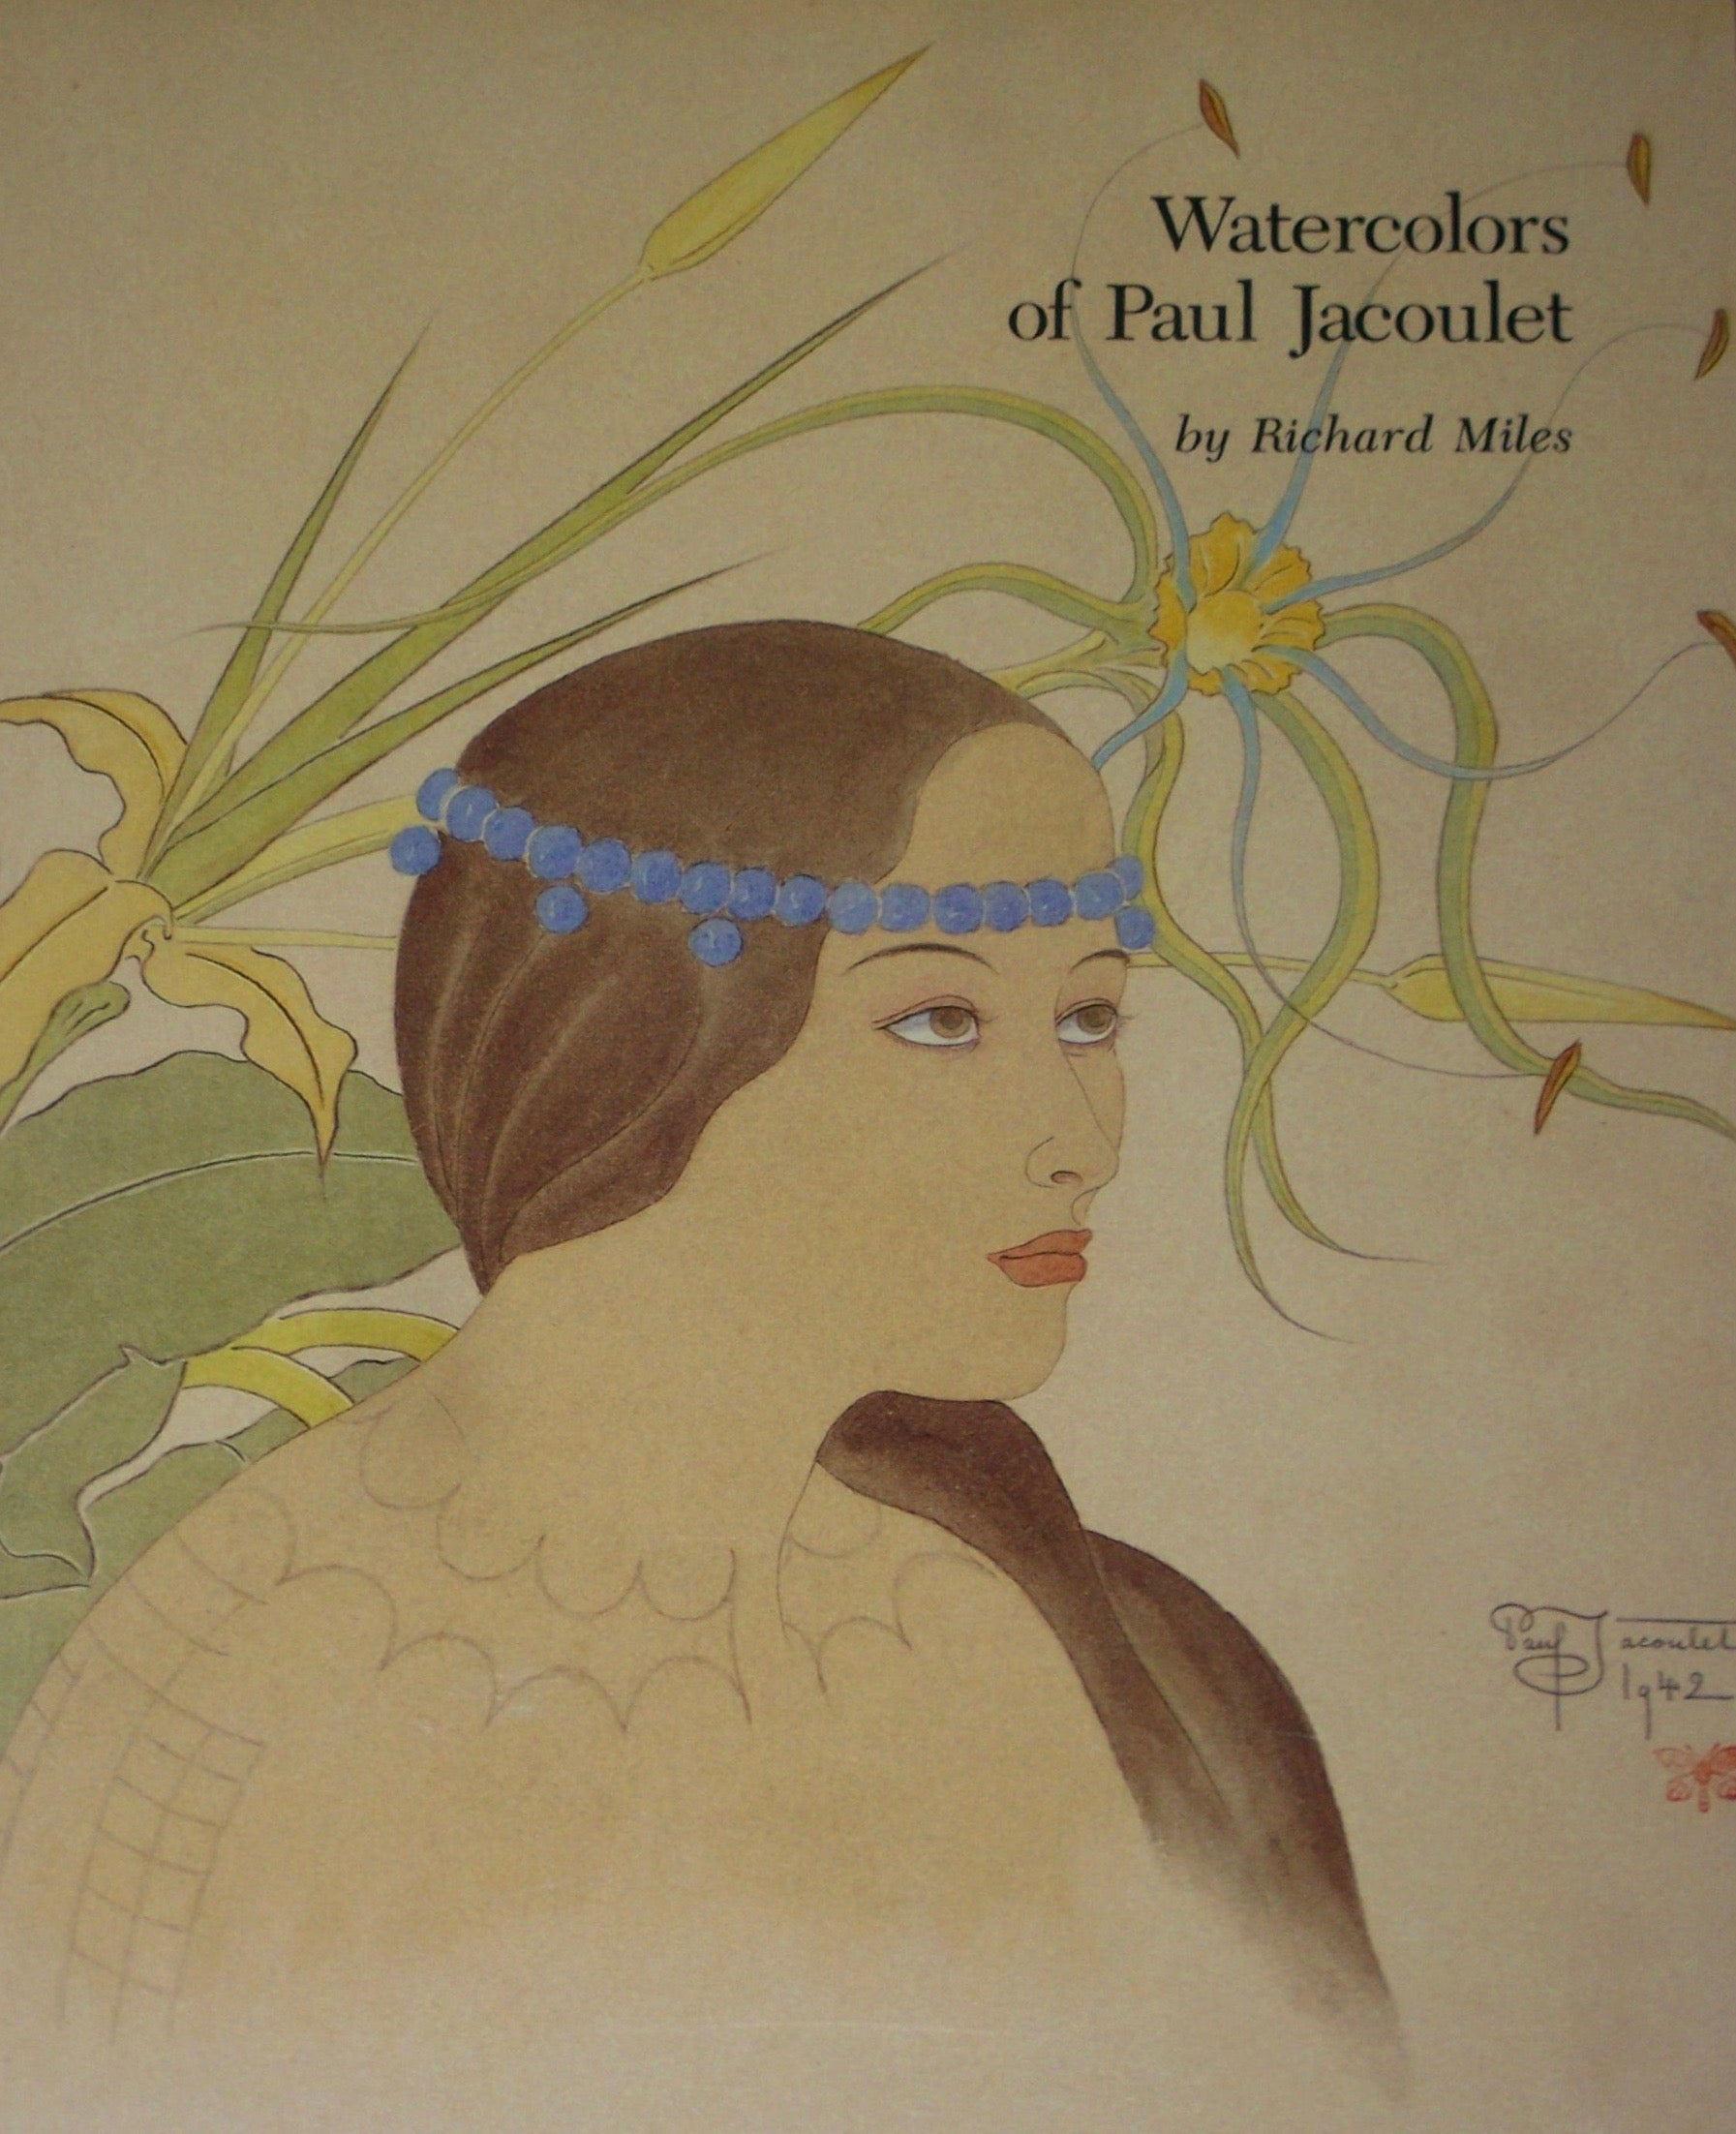 Watercolors of Paul Jacoulet by Richard Miles